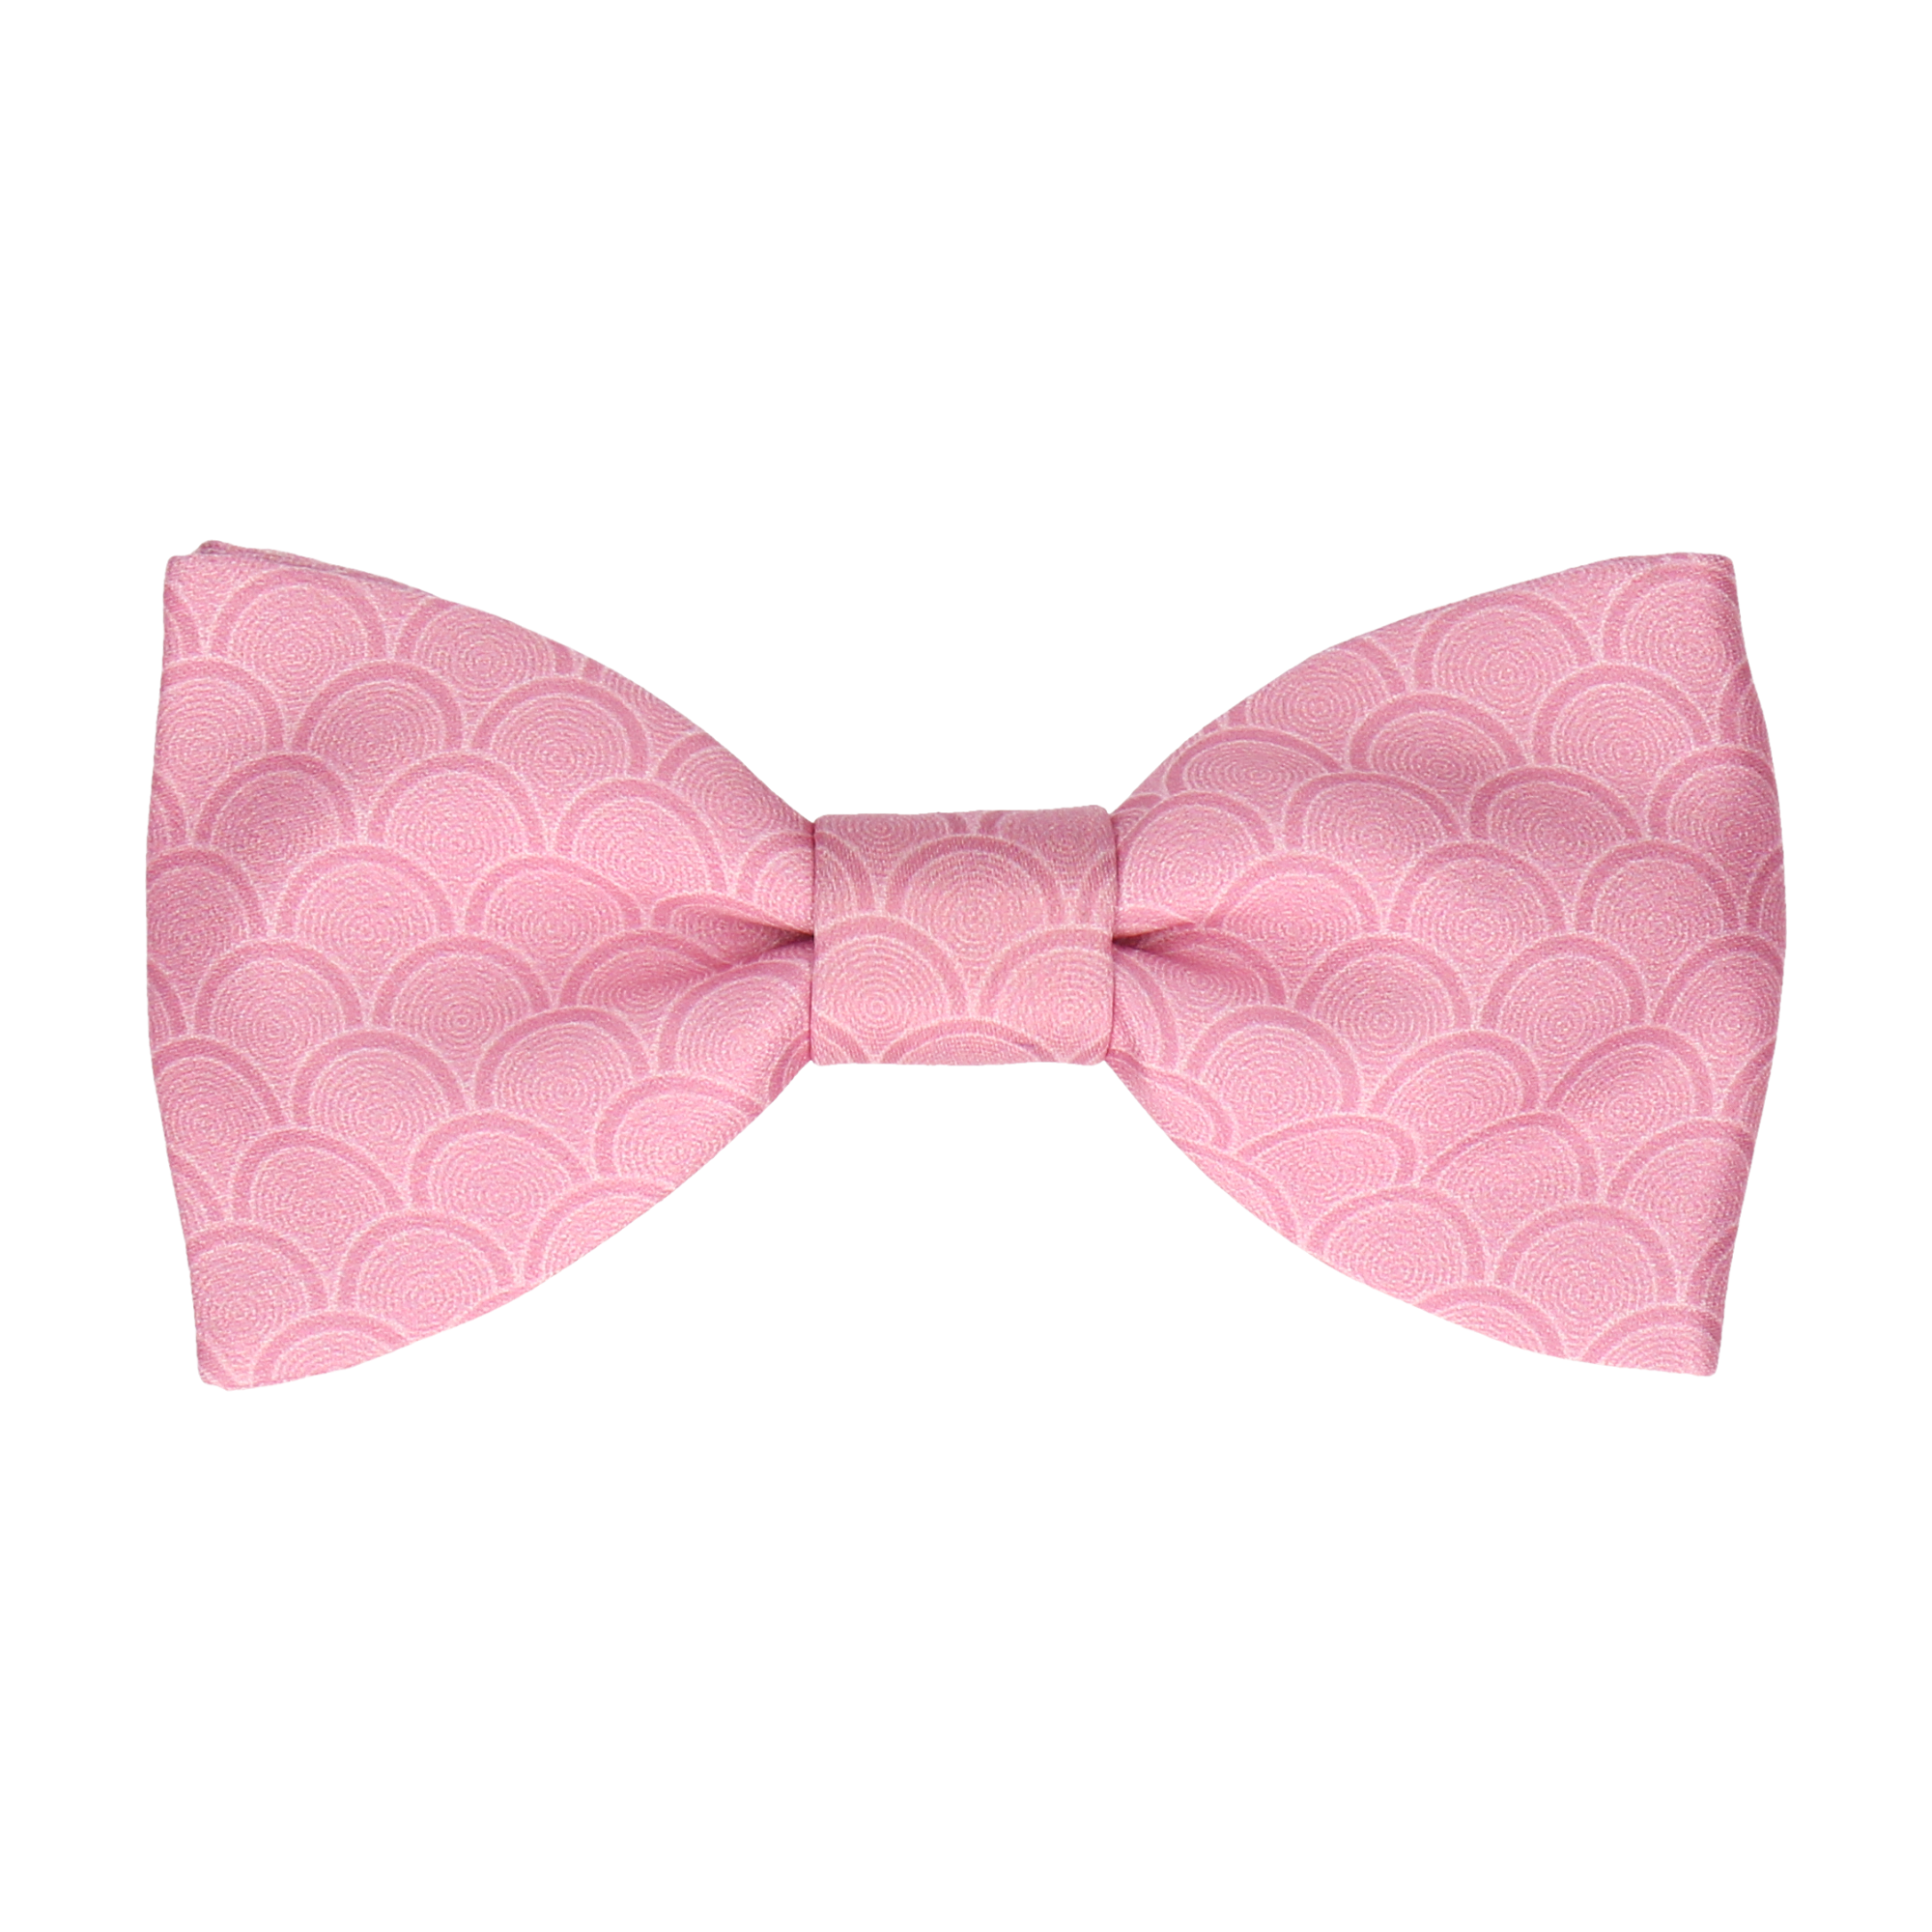 Wordsworth in Dusky Pink Bow Tie